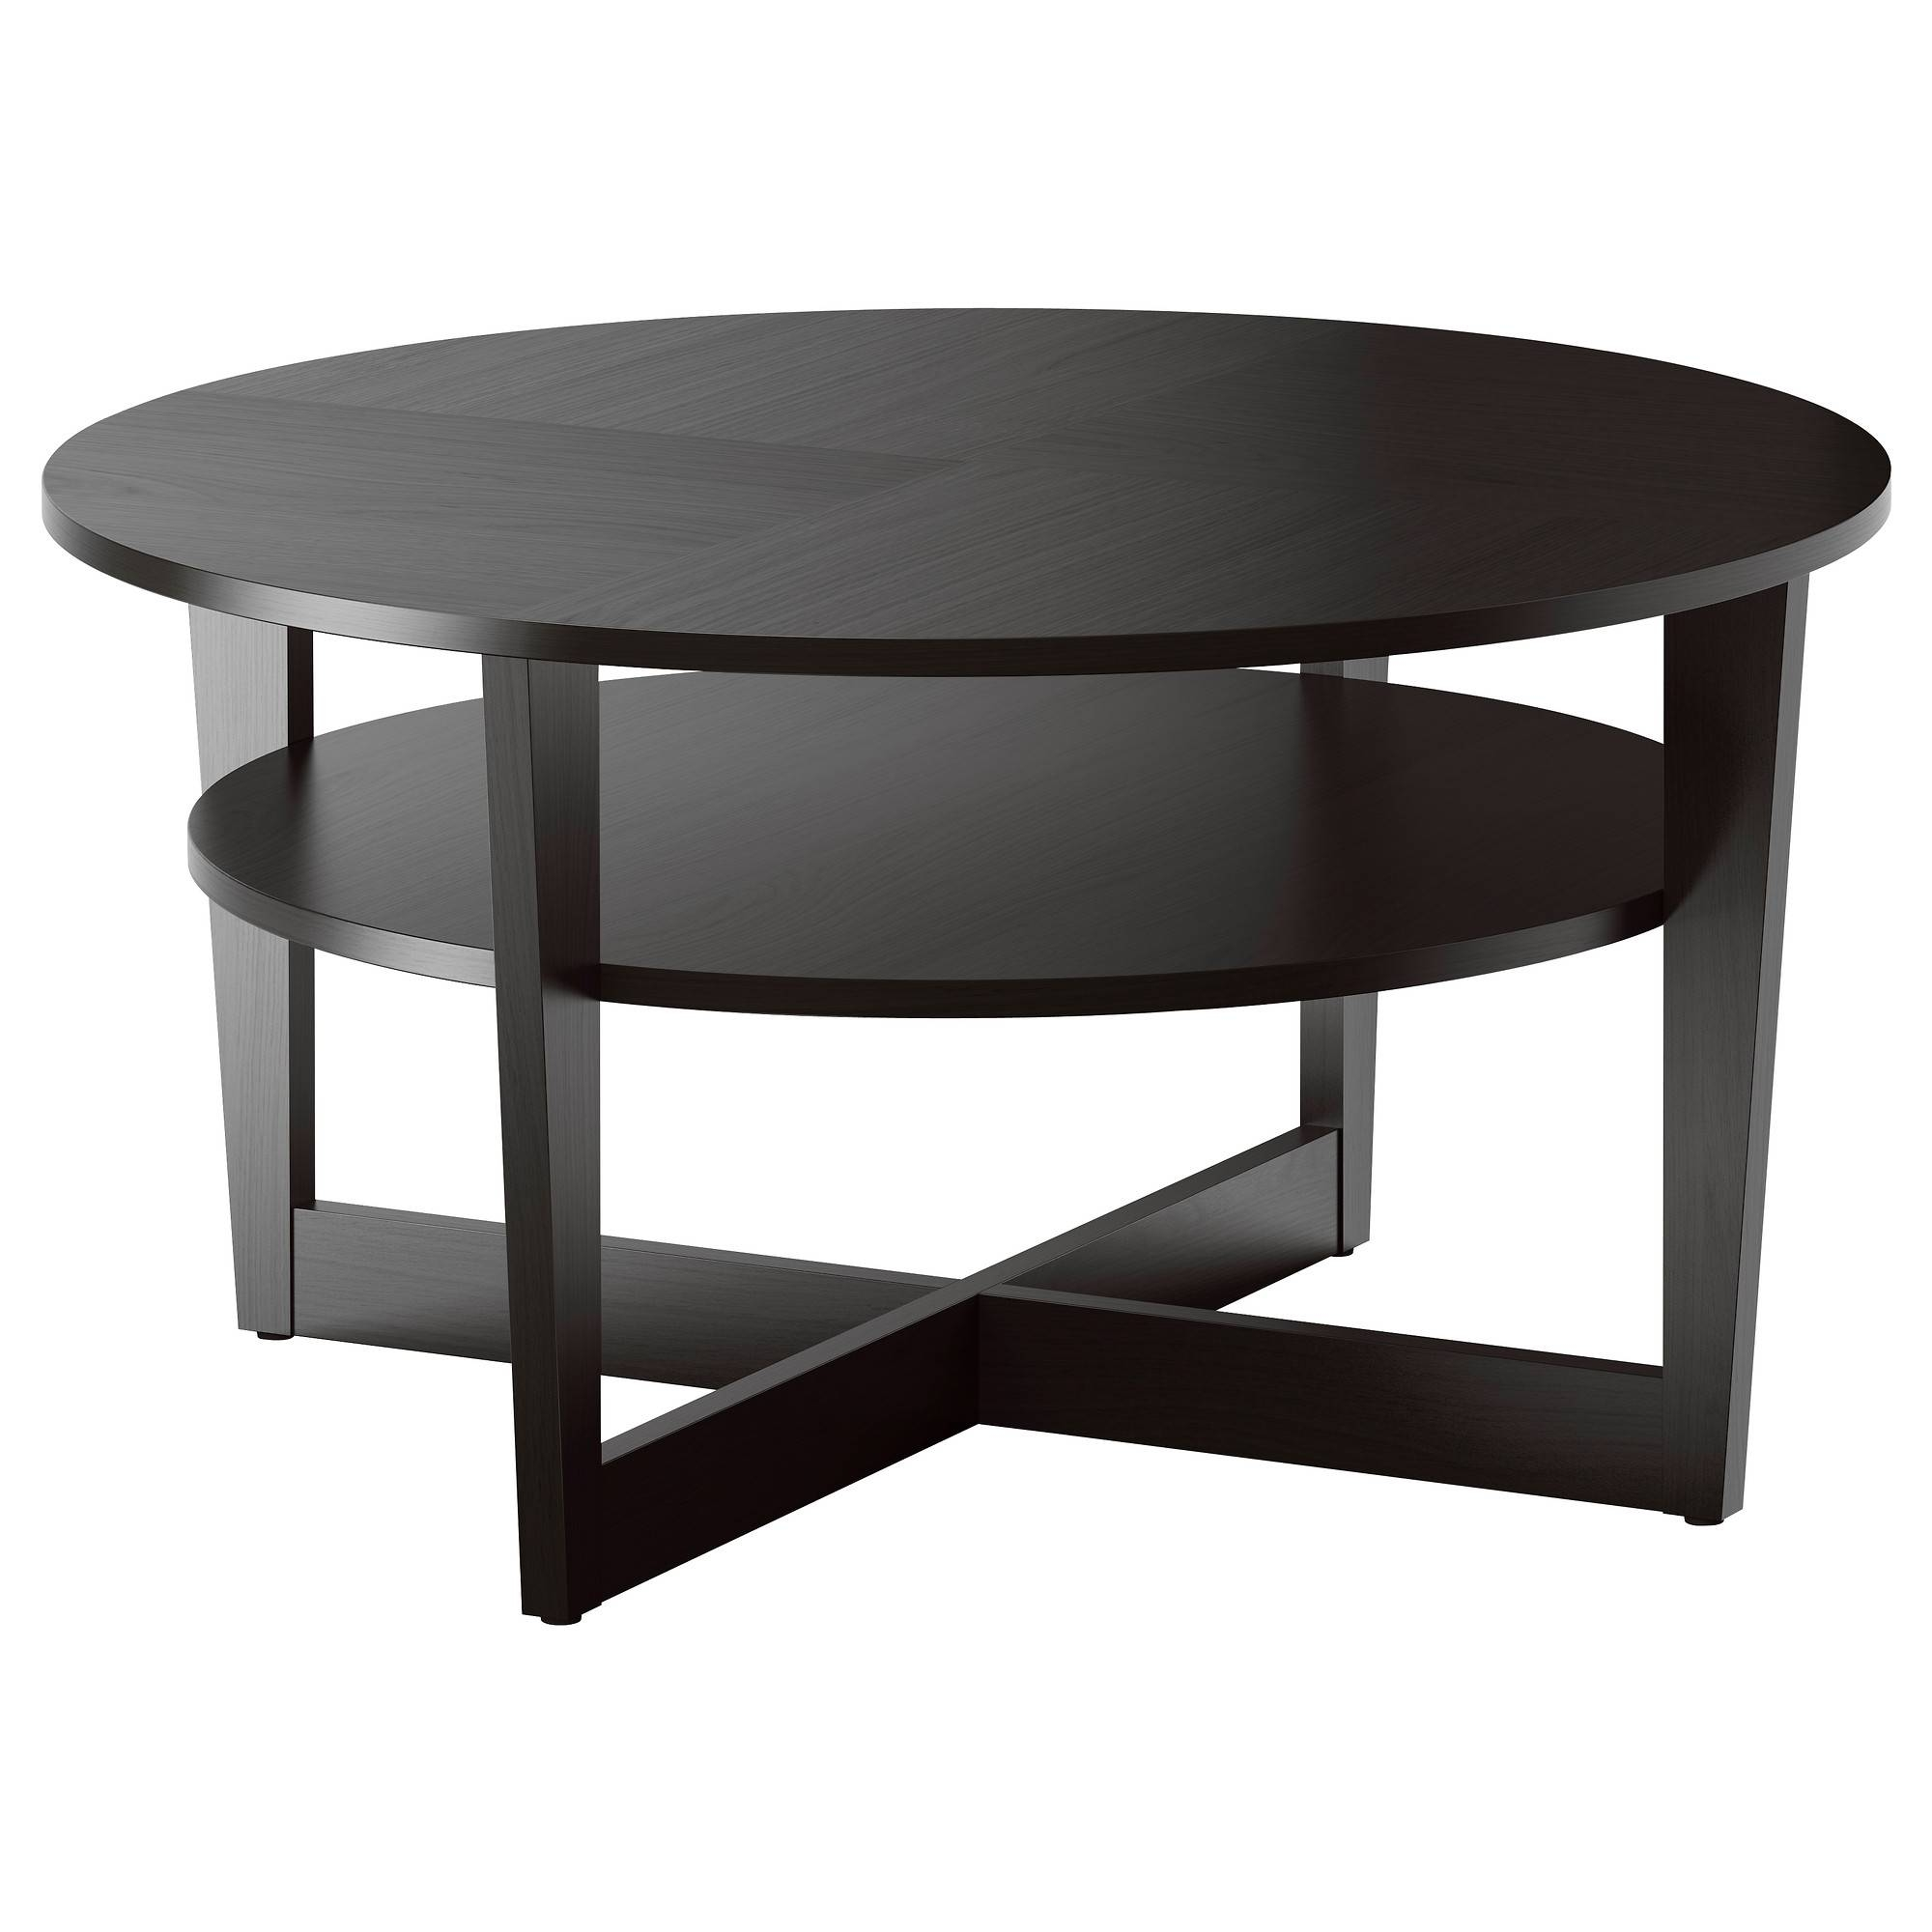 Coffee Table: Amazing Circle Coffee Table Ideas Round Black Coffee in Black Circle Coffee Tables (Image 8 of 30)